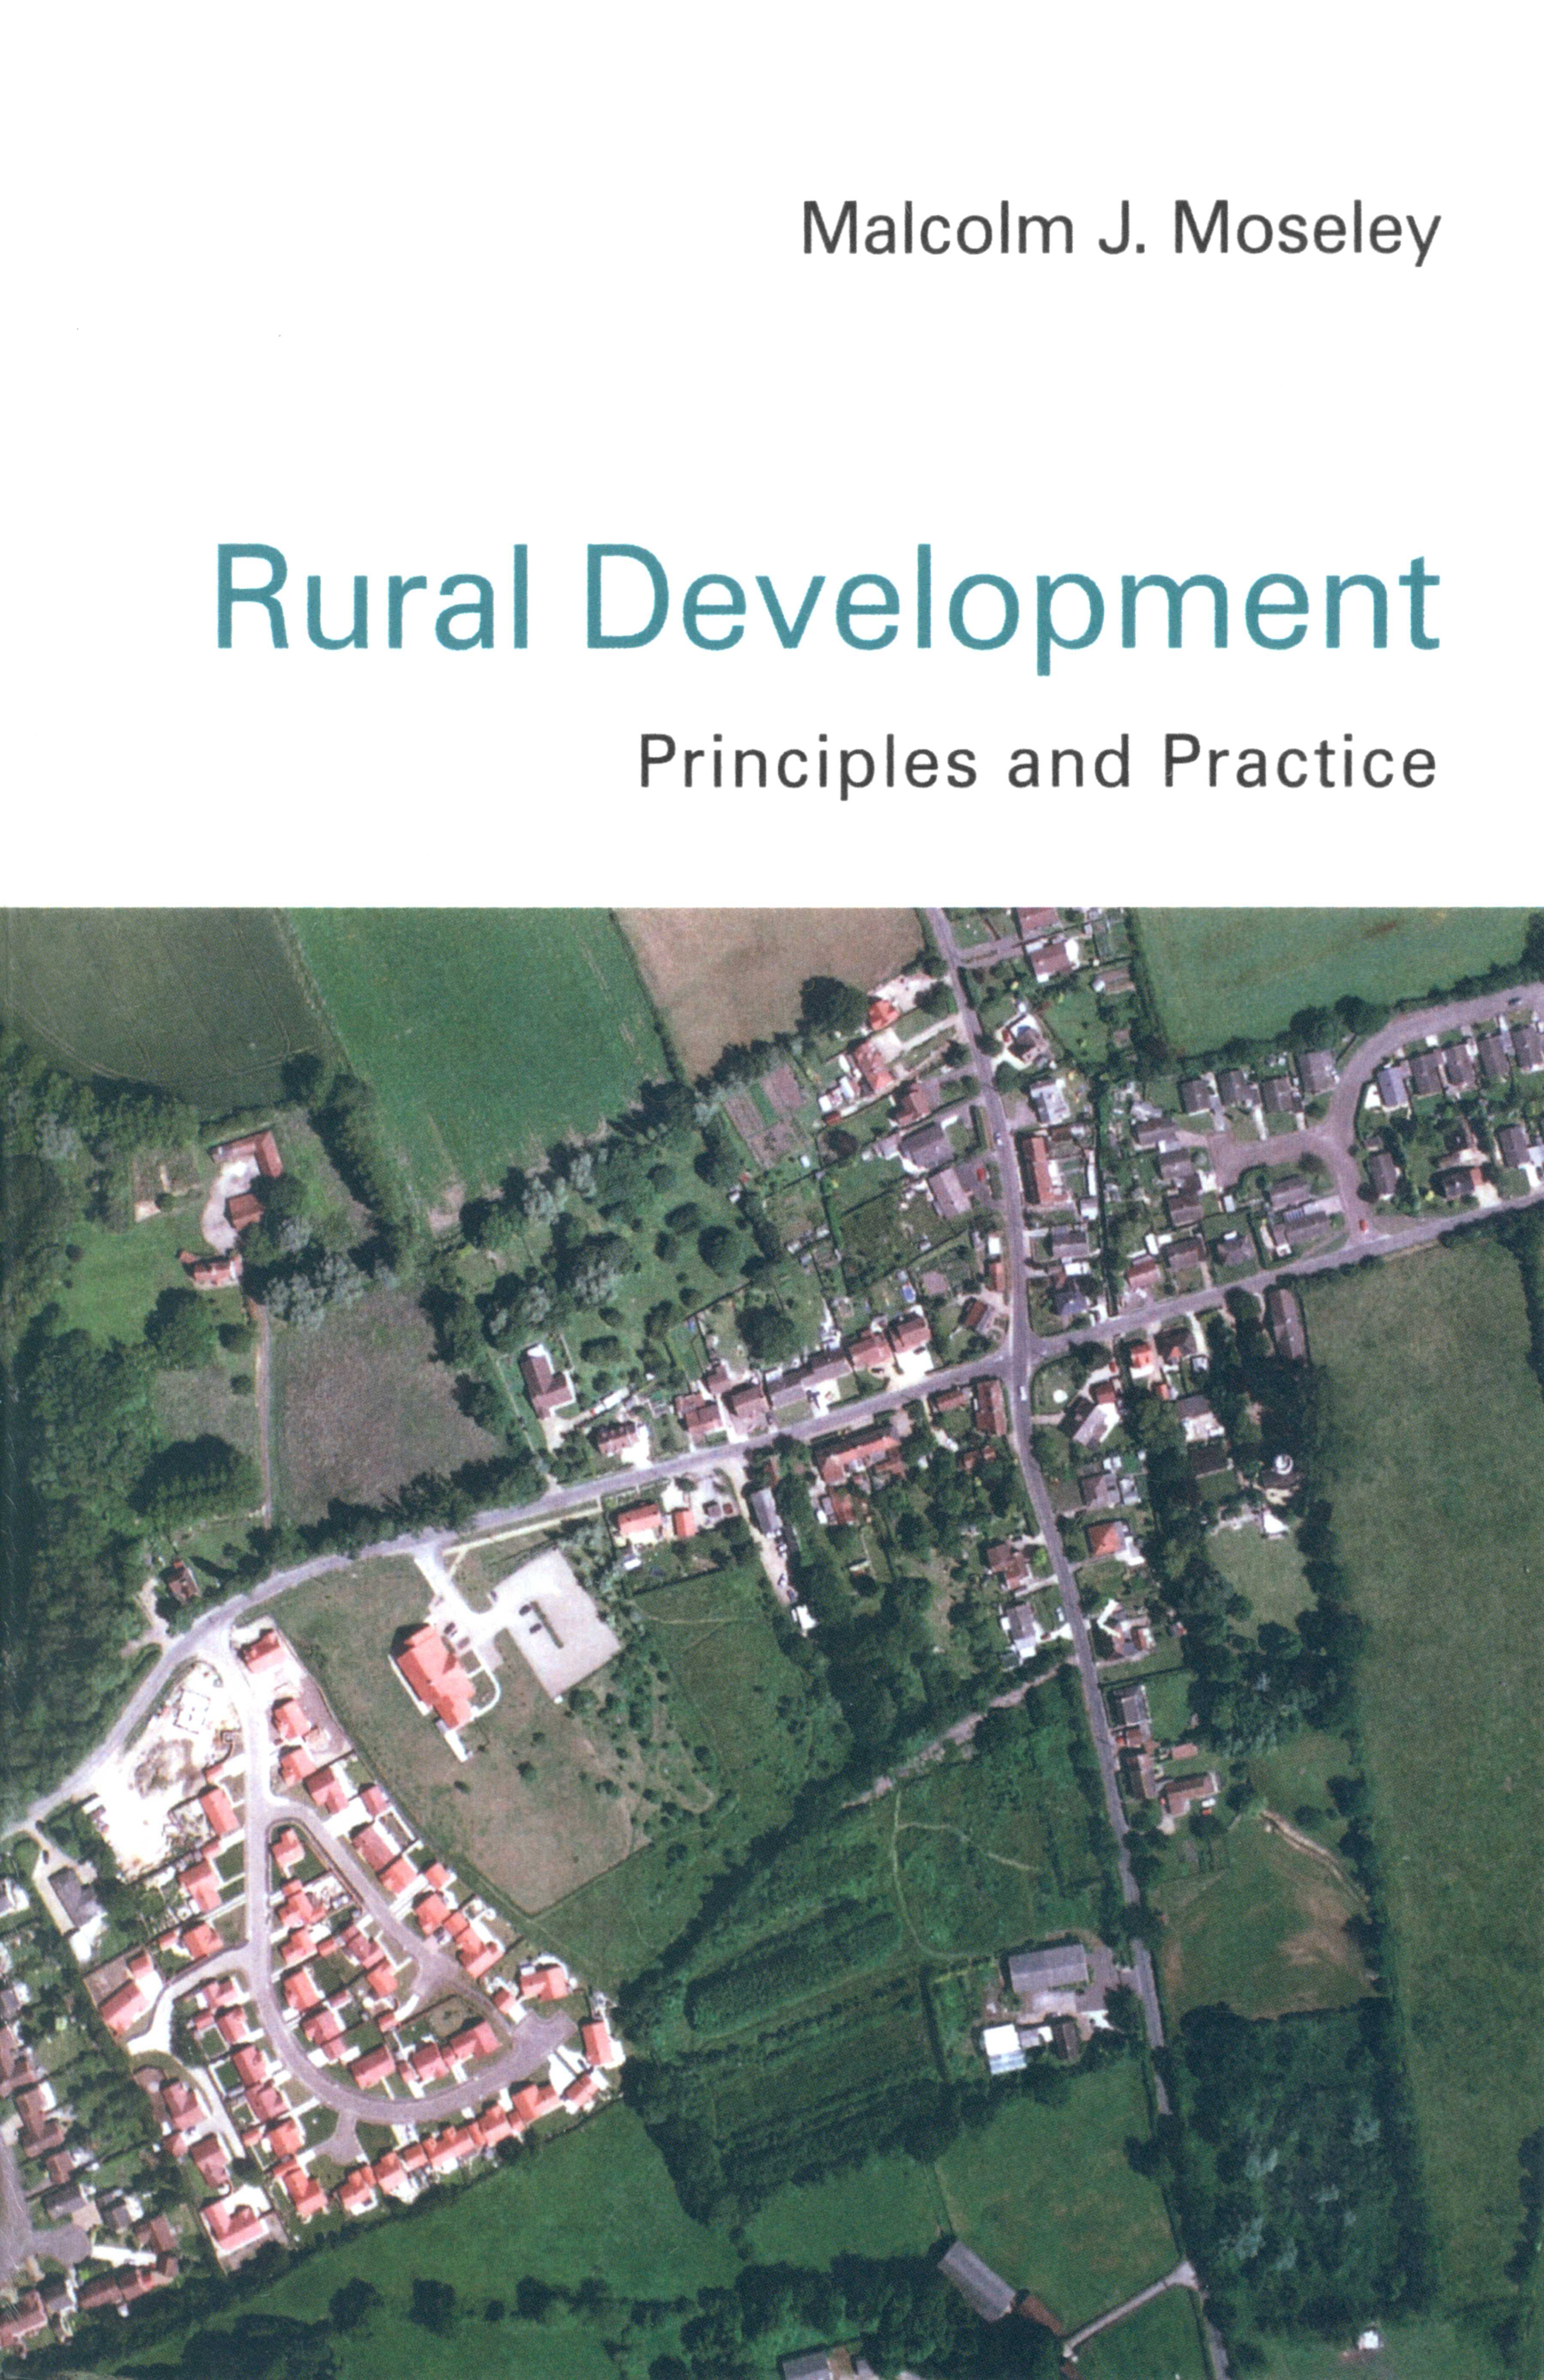 Download Ebook Rural Development by Malcolm Moseley Pdf